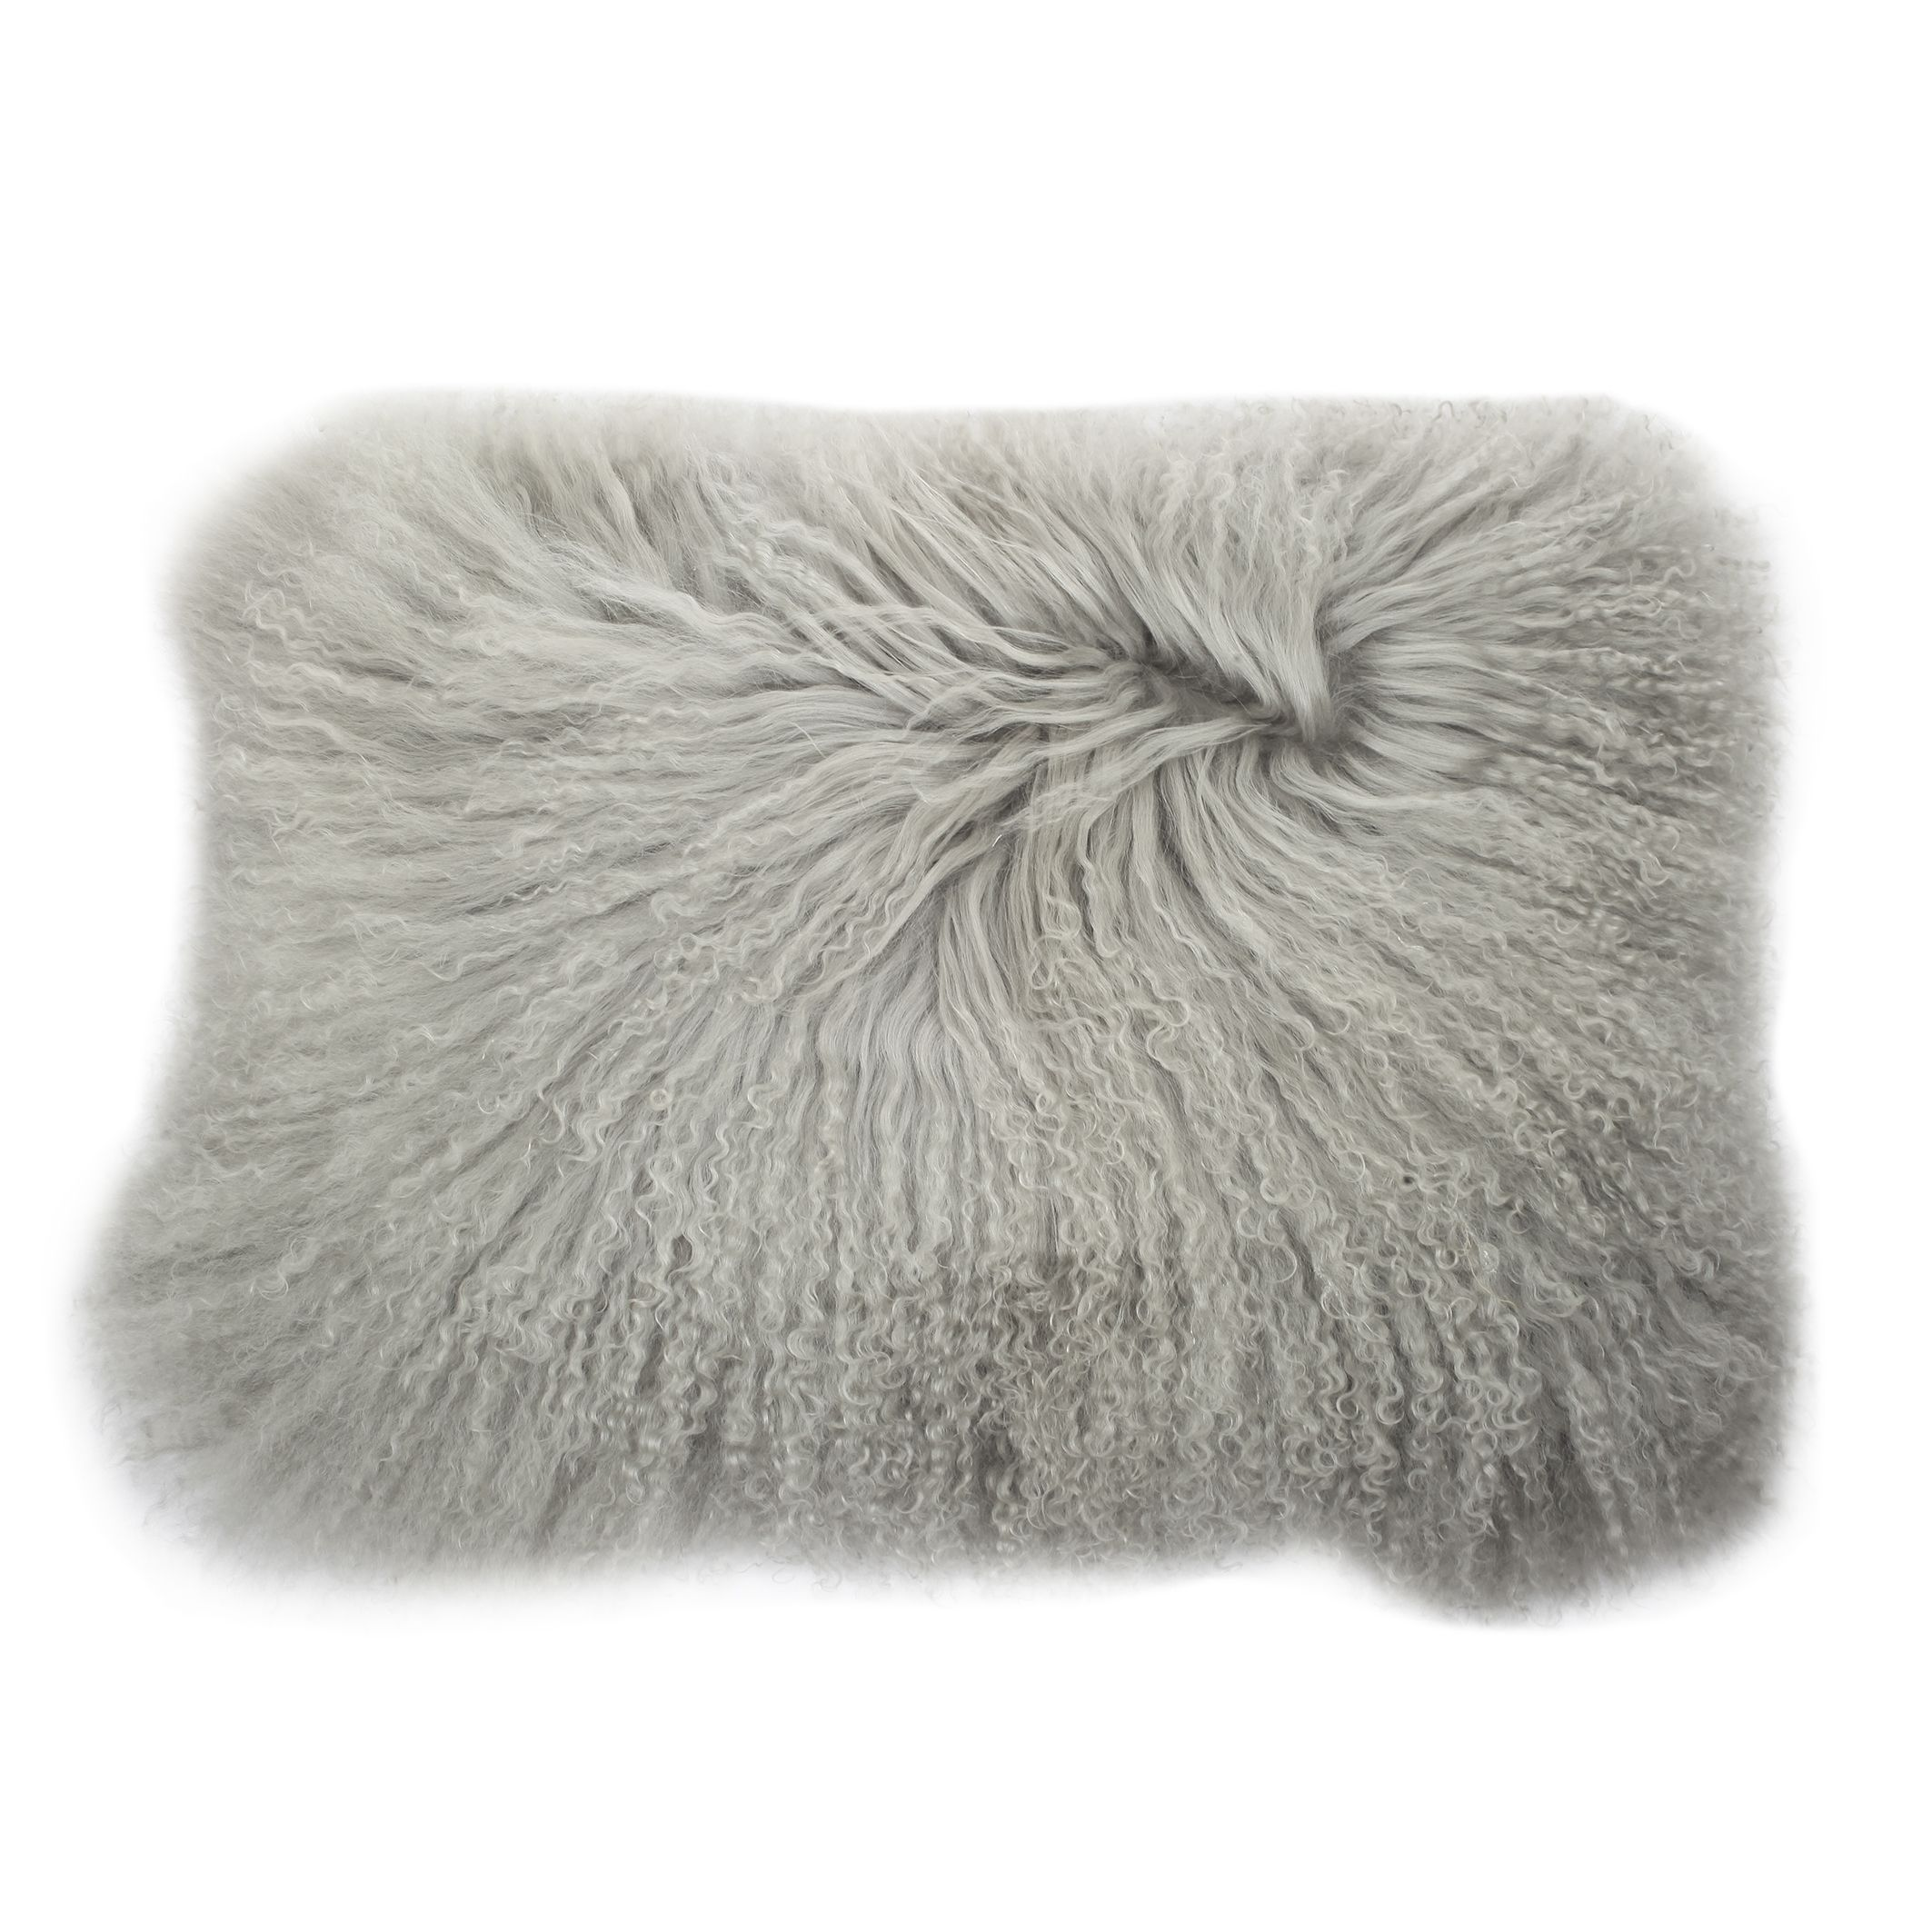 slash w adrienne throws pillow mongolian home fur lamb pillows enlarged products and landau tags